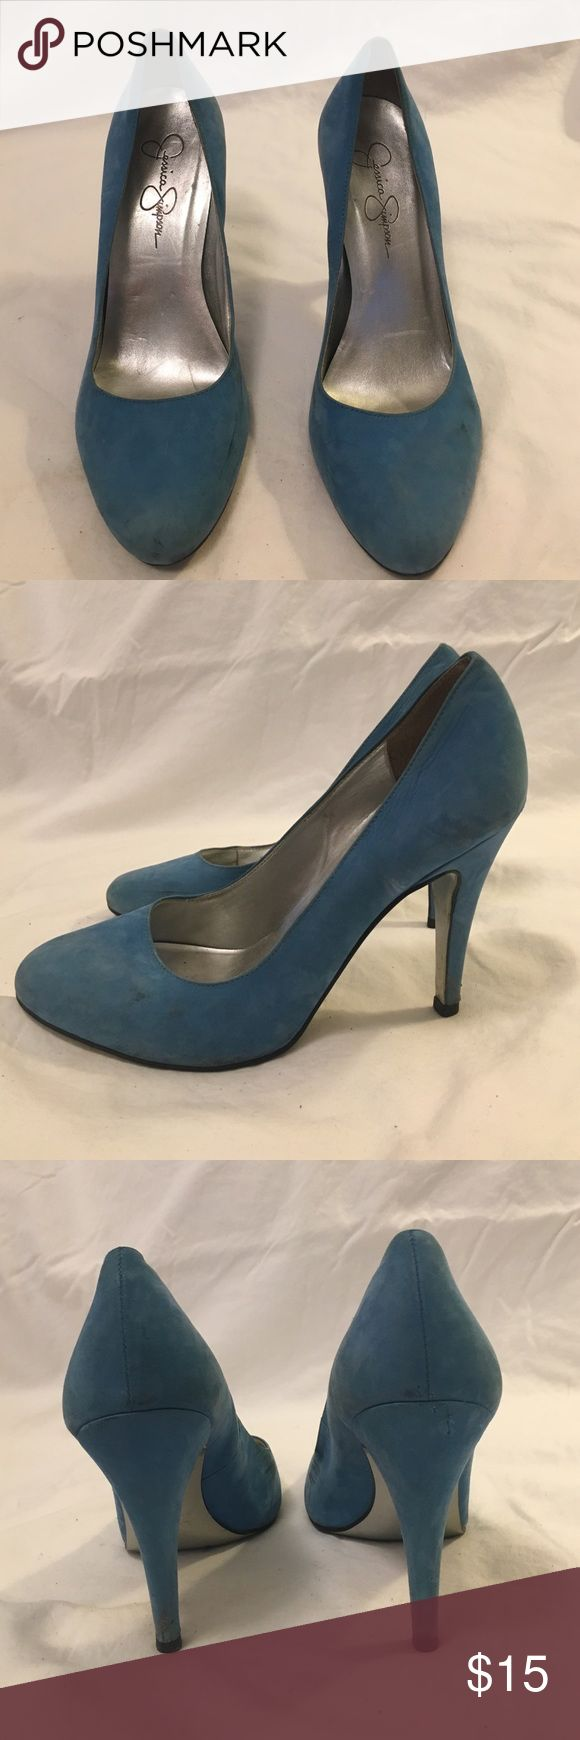 Jessica Simpson blue suede pumps size 7.5 Worn Jessica Simpson cyan blue suede round toe pump. Normal wear on them. Scuffs on sides. No box. Let me know if you have any questions. Happy to answer! No trades. Jessica Simpson Shoes Heels